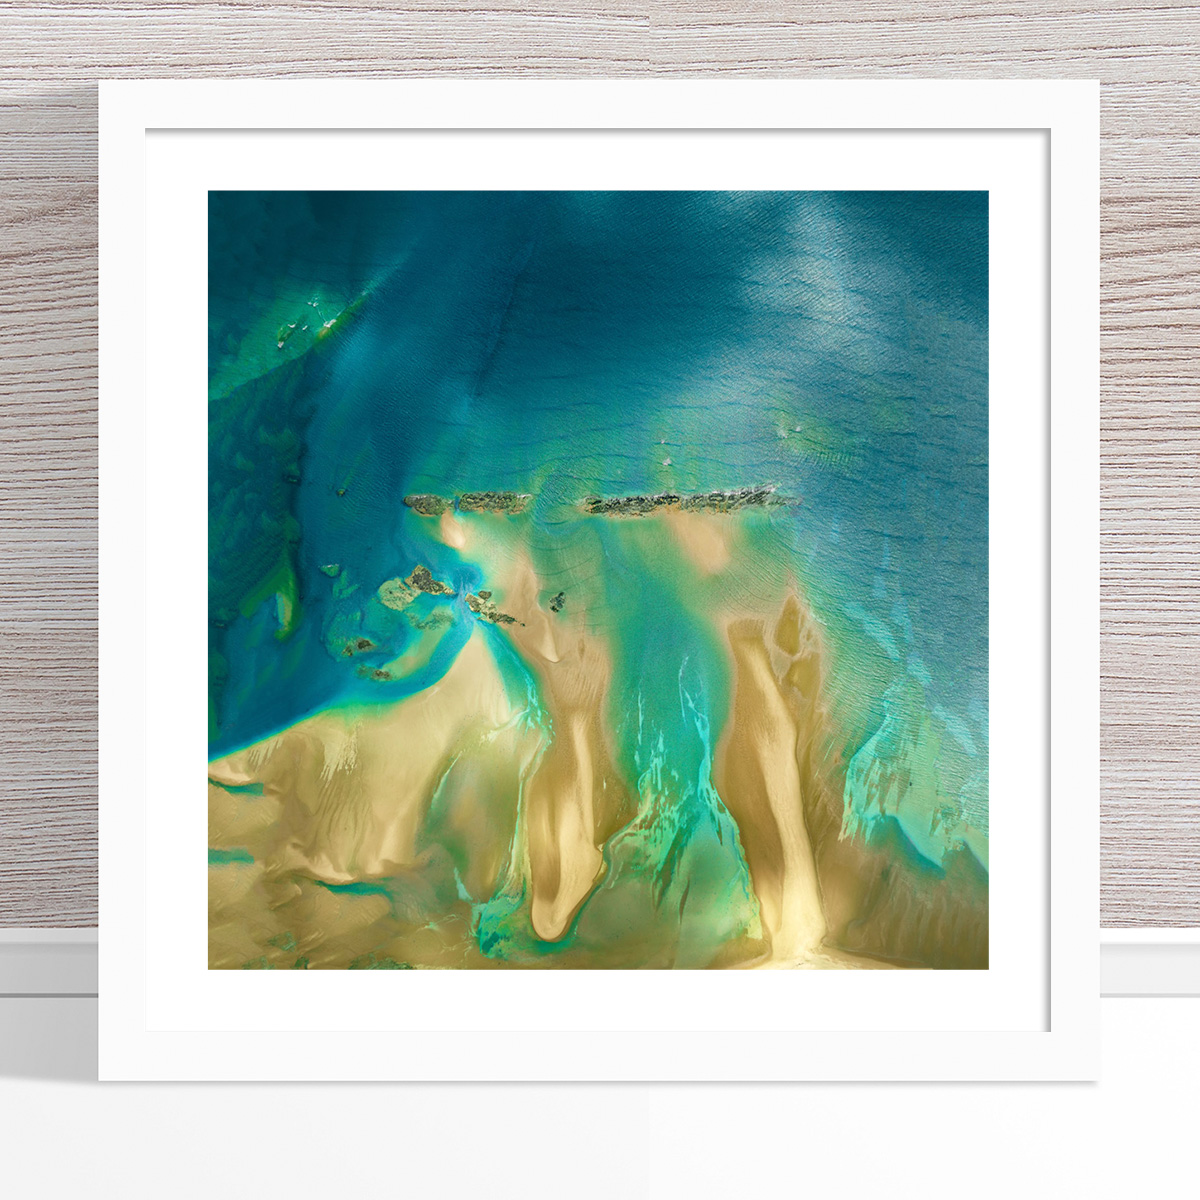 Chris Saunders - 'Aerial Coast 011' White Frame